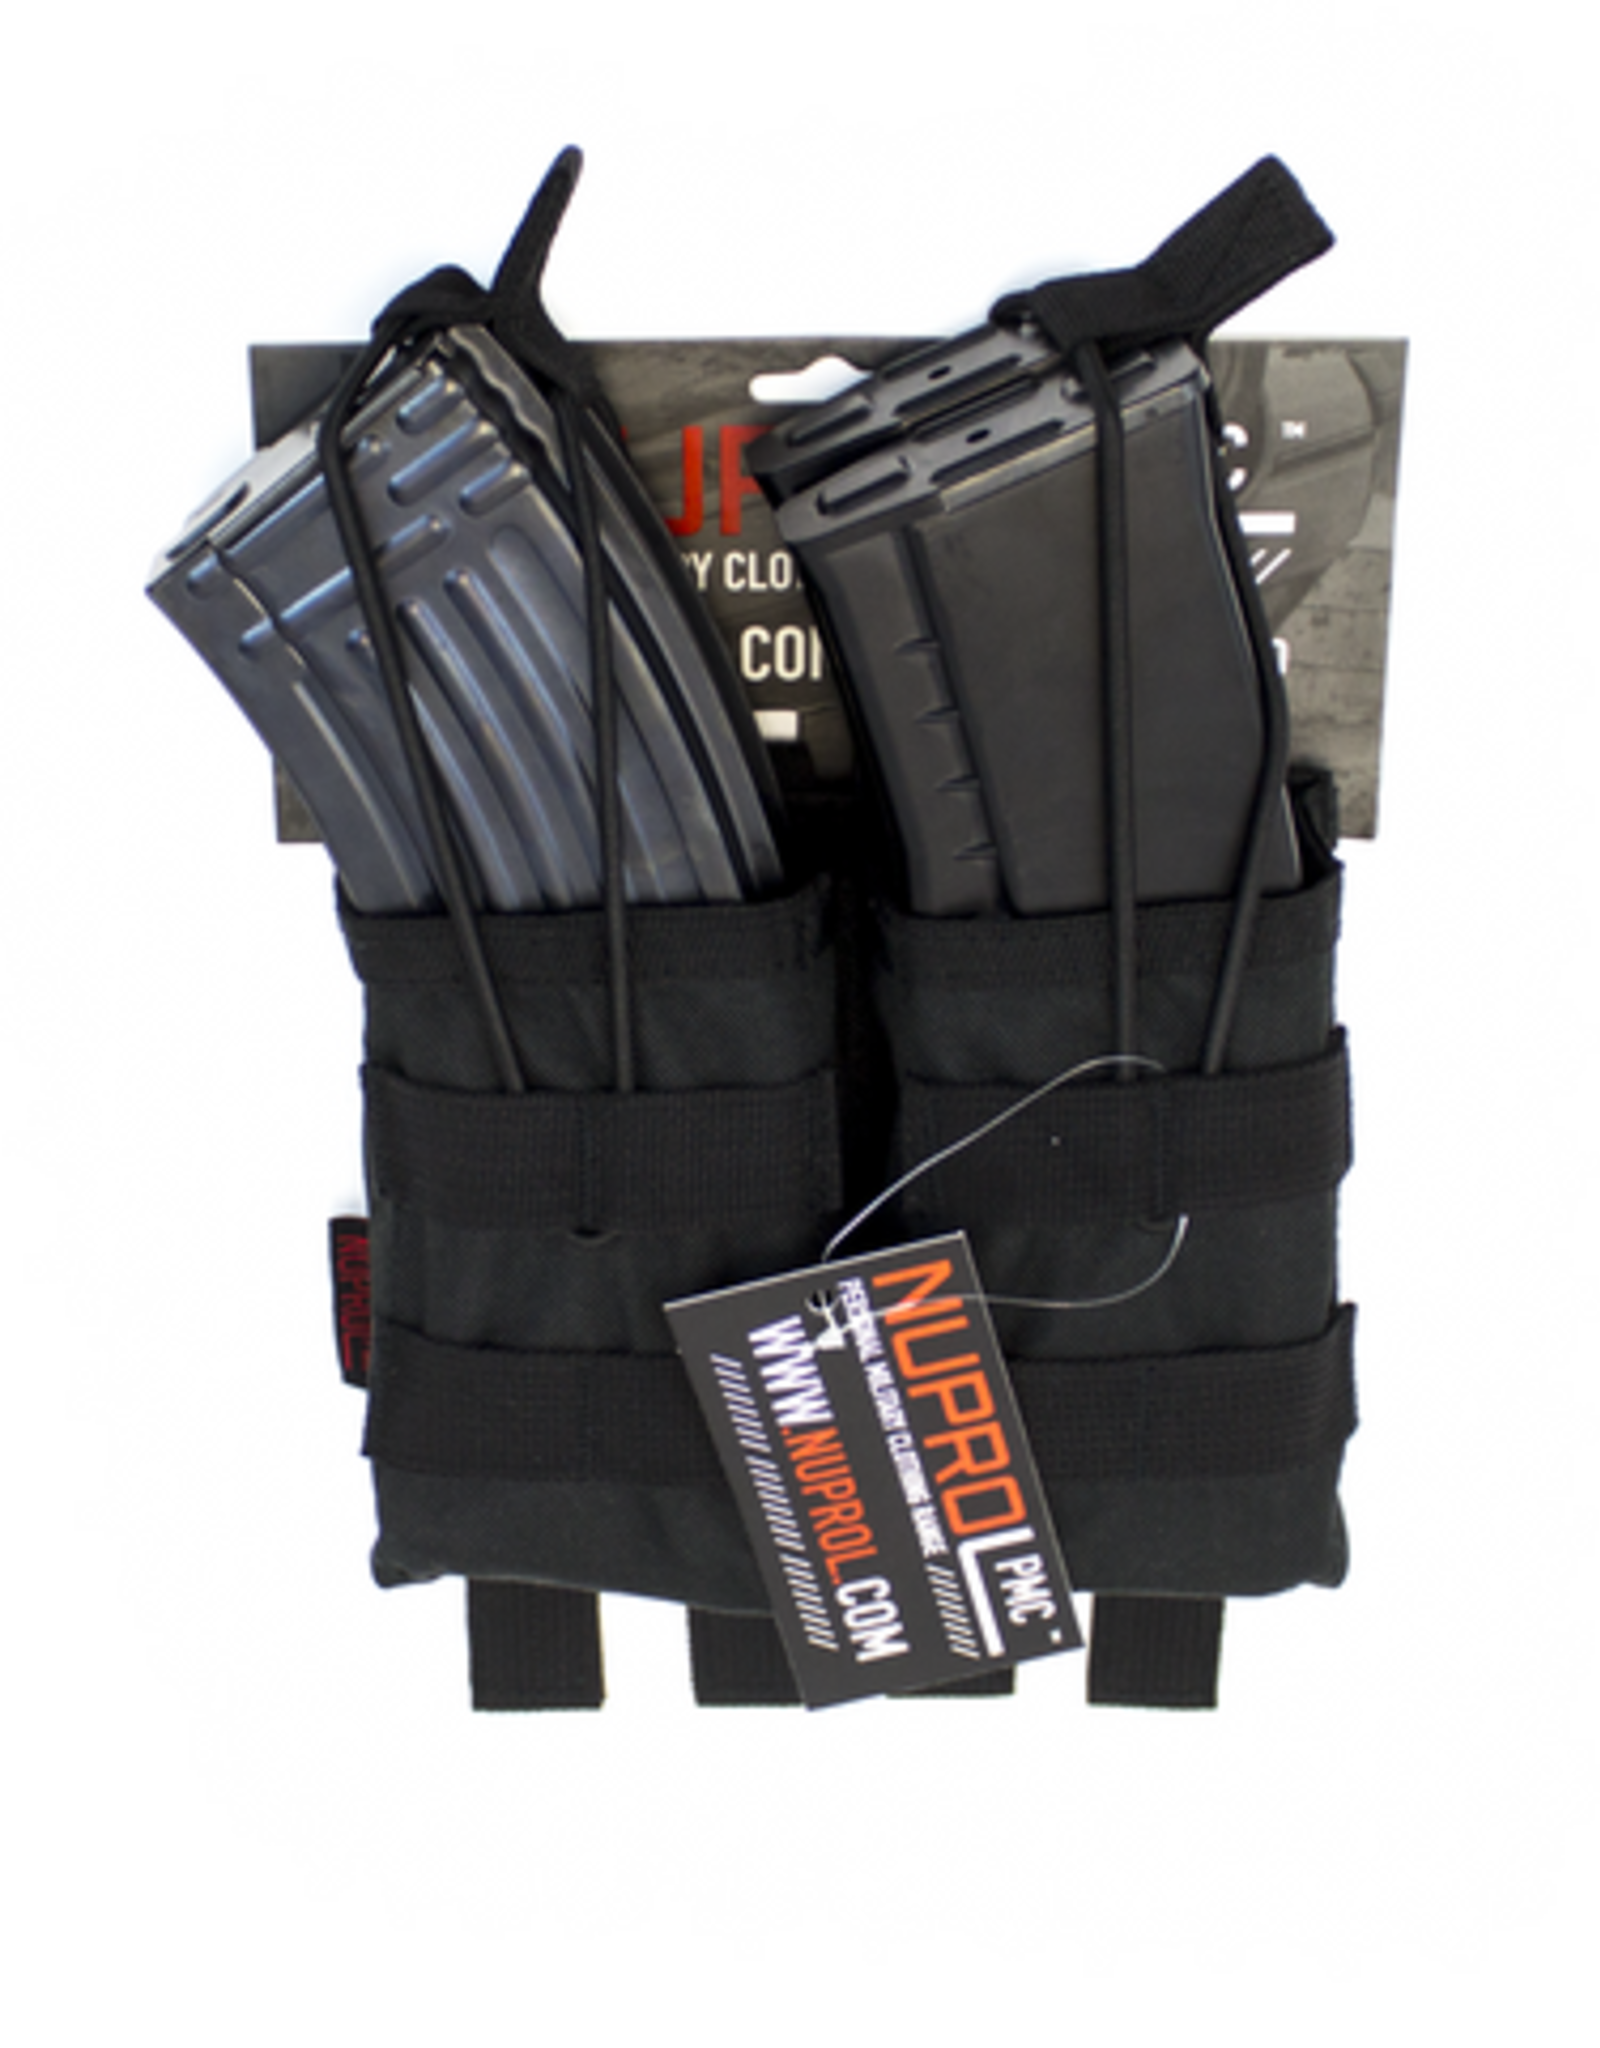 NUPROL NP PMC AK DOUBLE OPEN MAG POUCH - BLACK